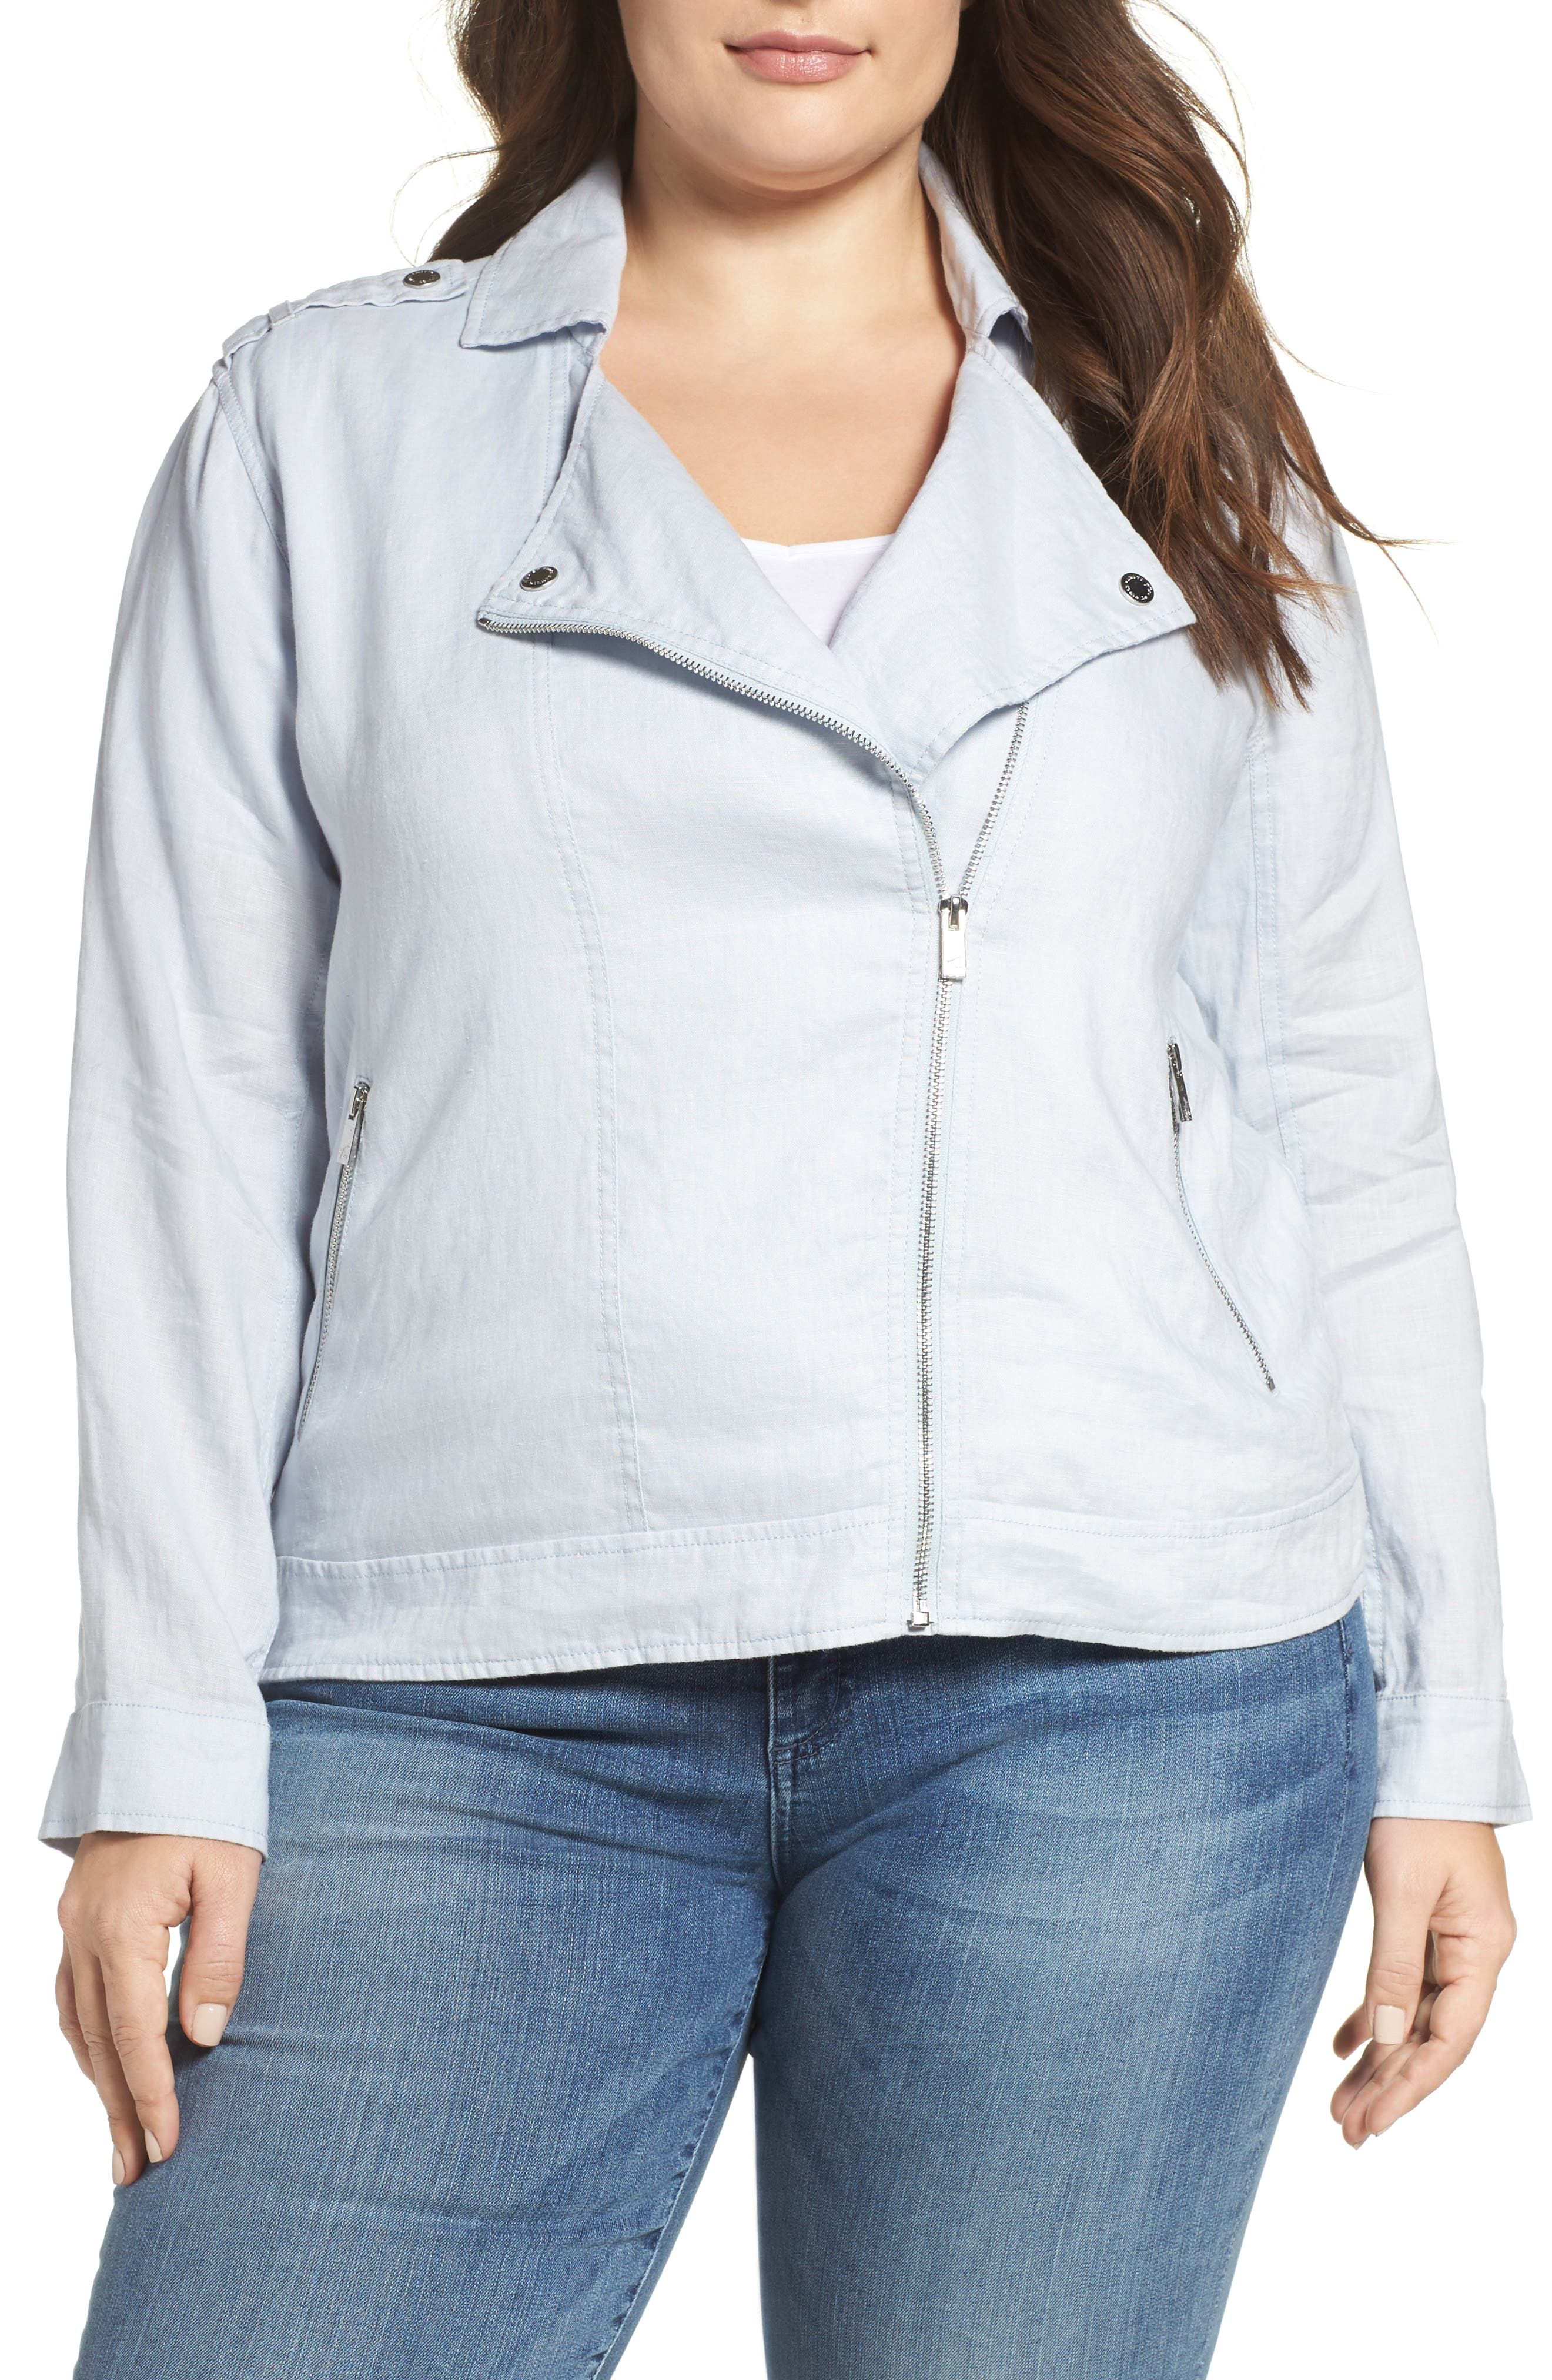 Main Image - Two by Vince Camuto Drapey Linen Moto Jacket (Plus Size)